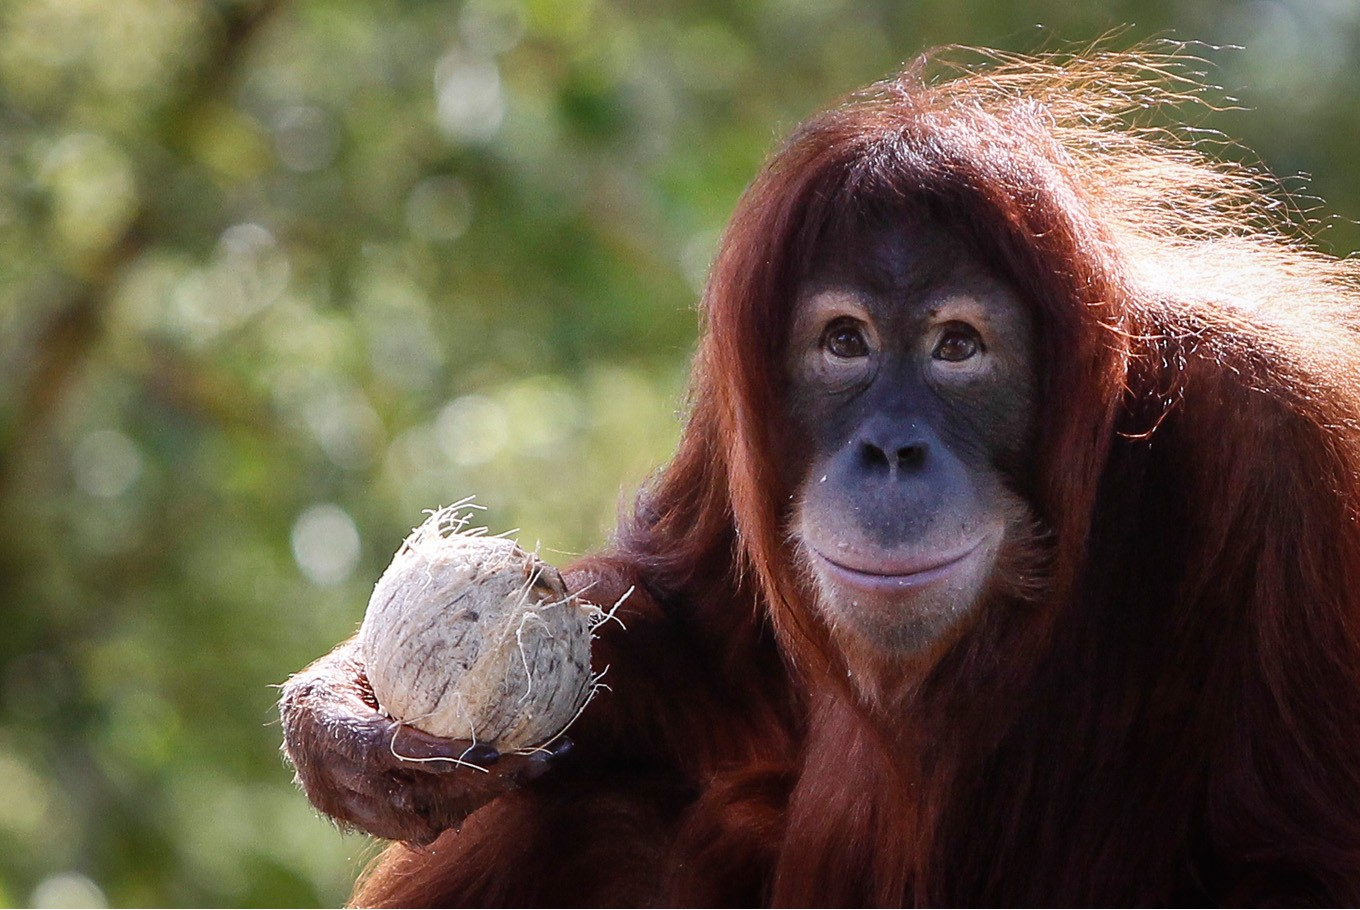 Tinder for apes? Dutch orangutans test out computer dating